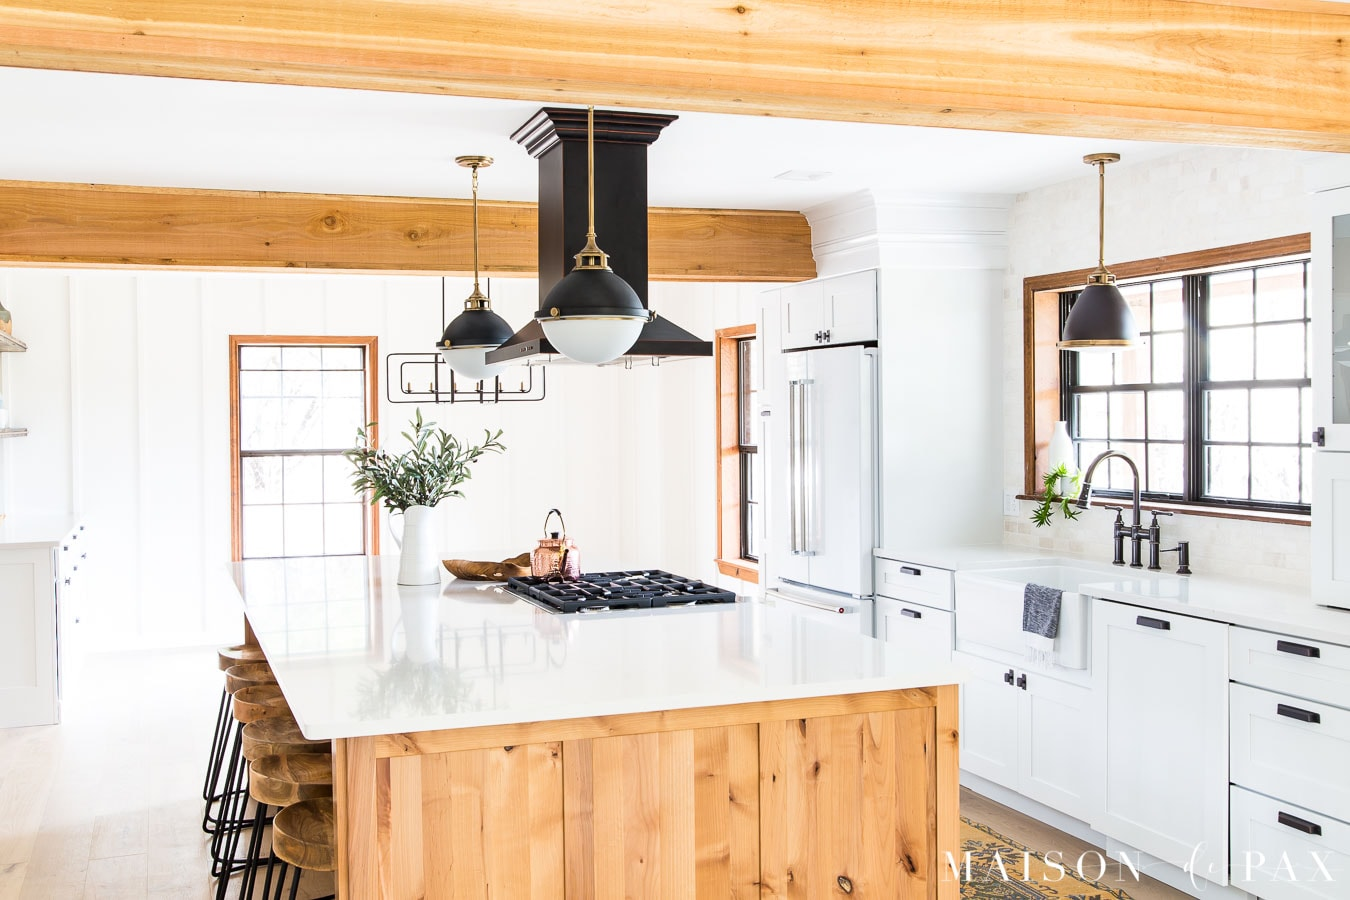 rustic cedar beams and rustic alder island in modern farmhouse kitchen | Maison de Pax